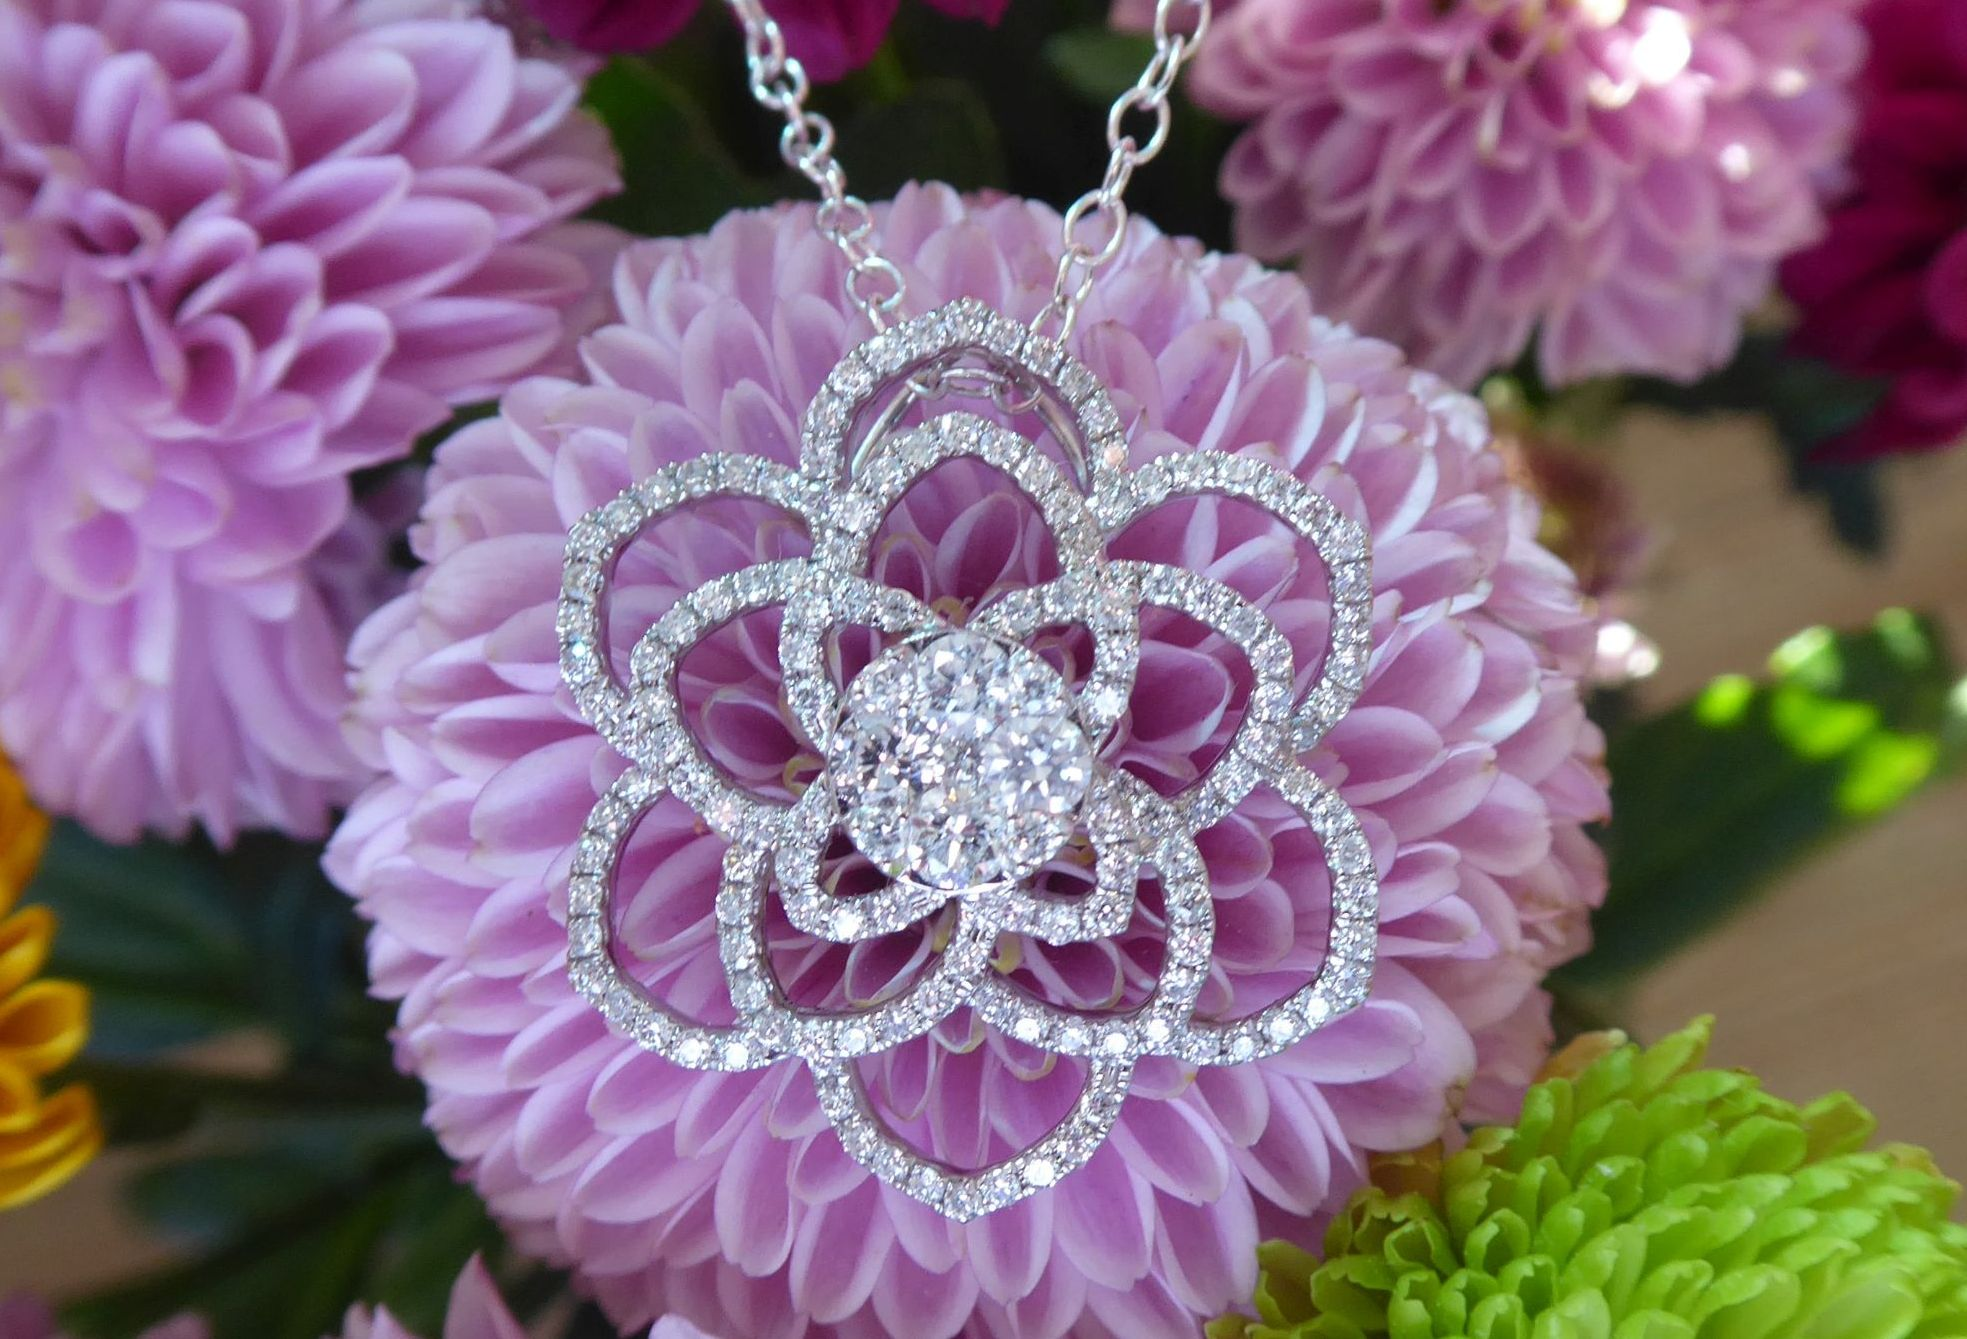 View our selection of necklaces